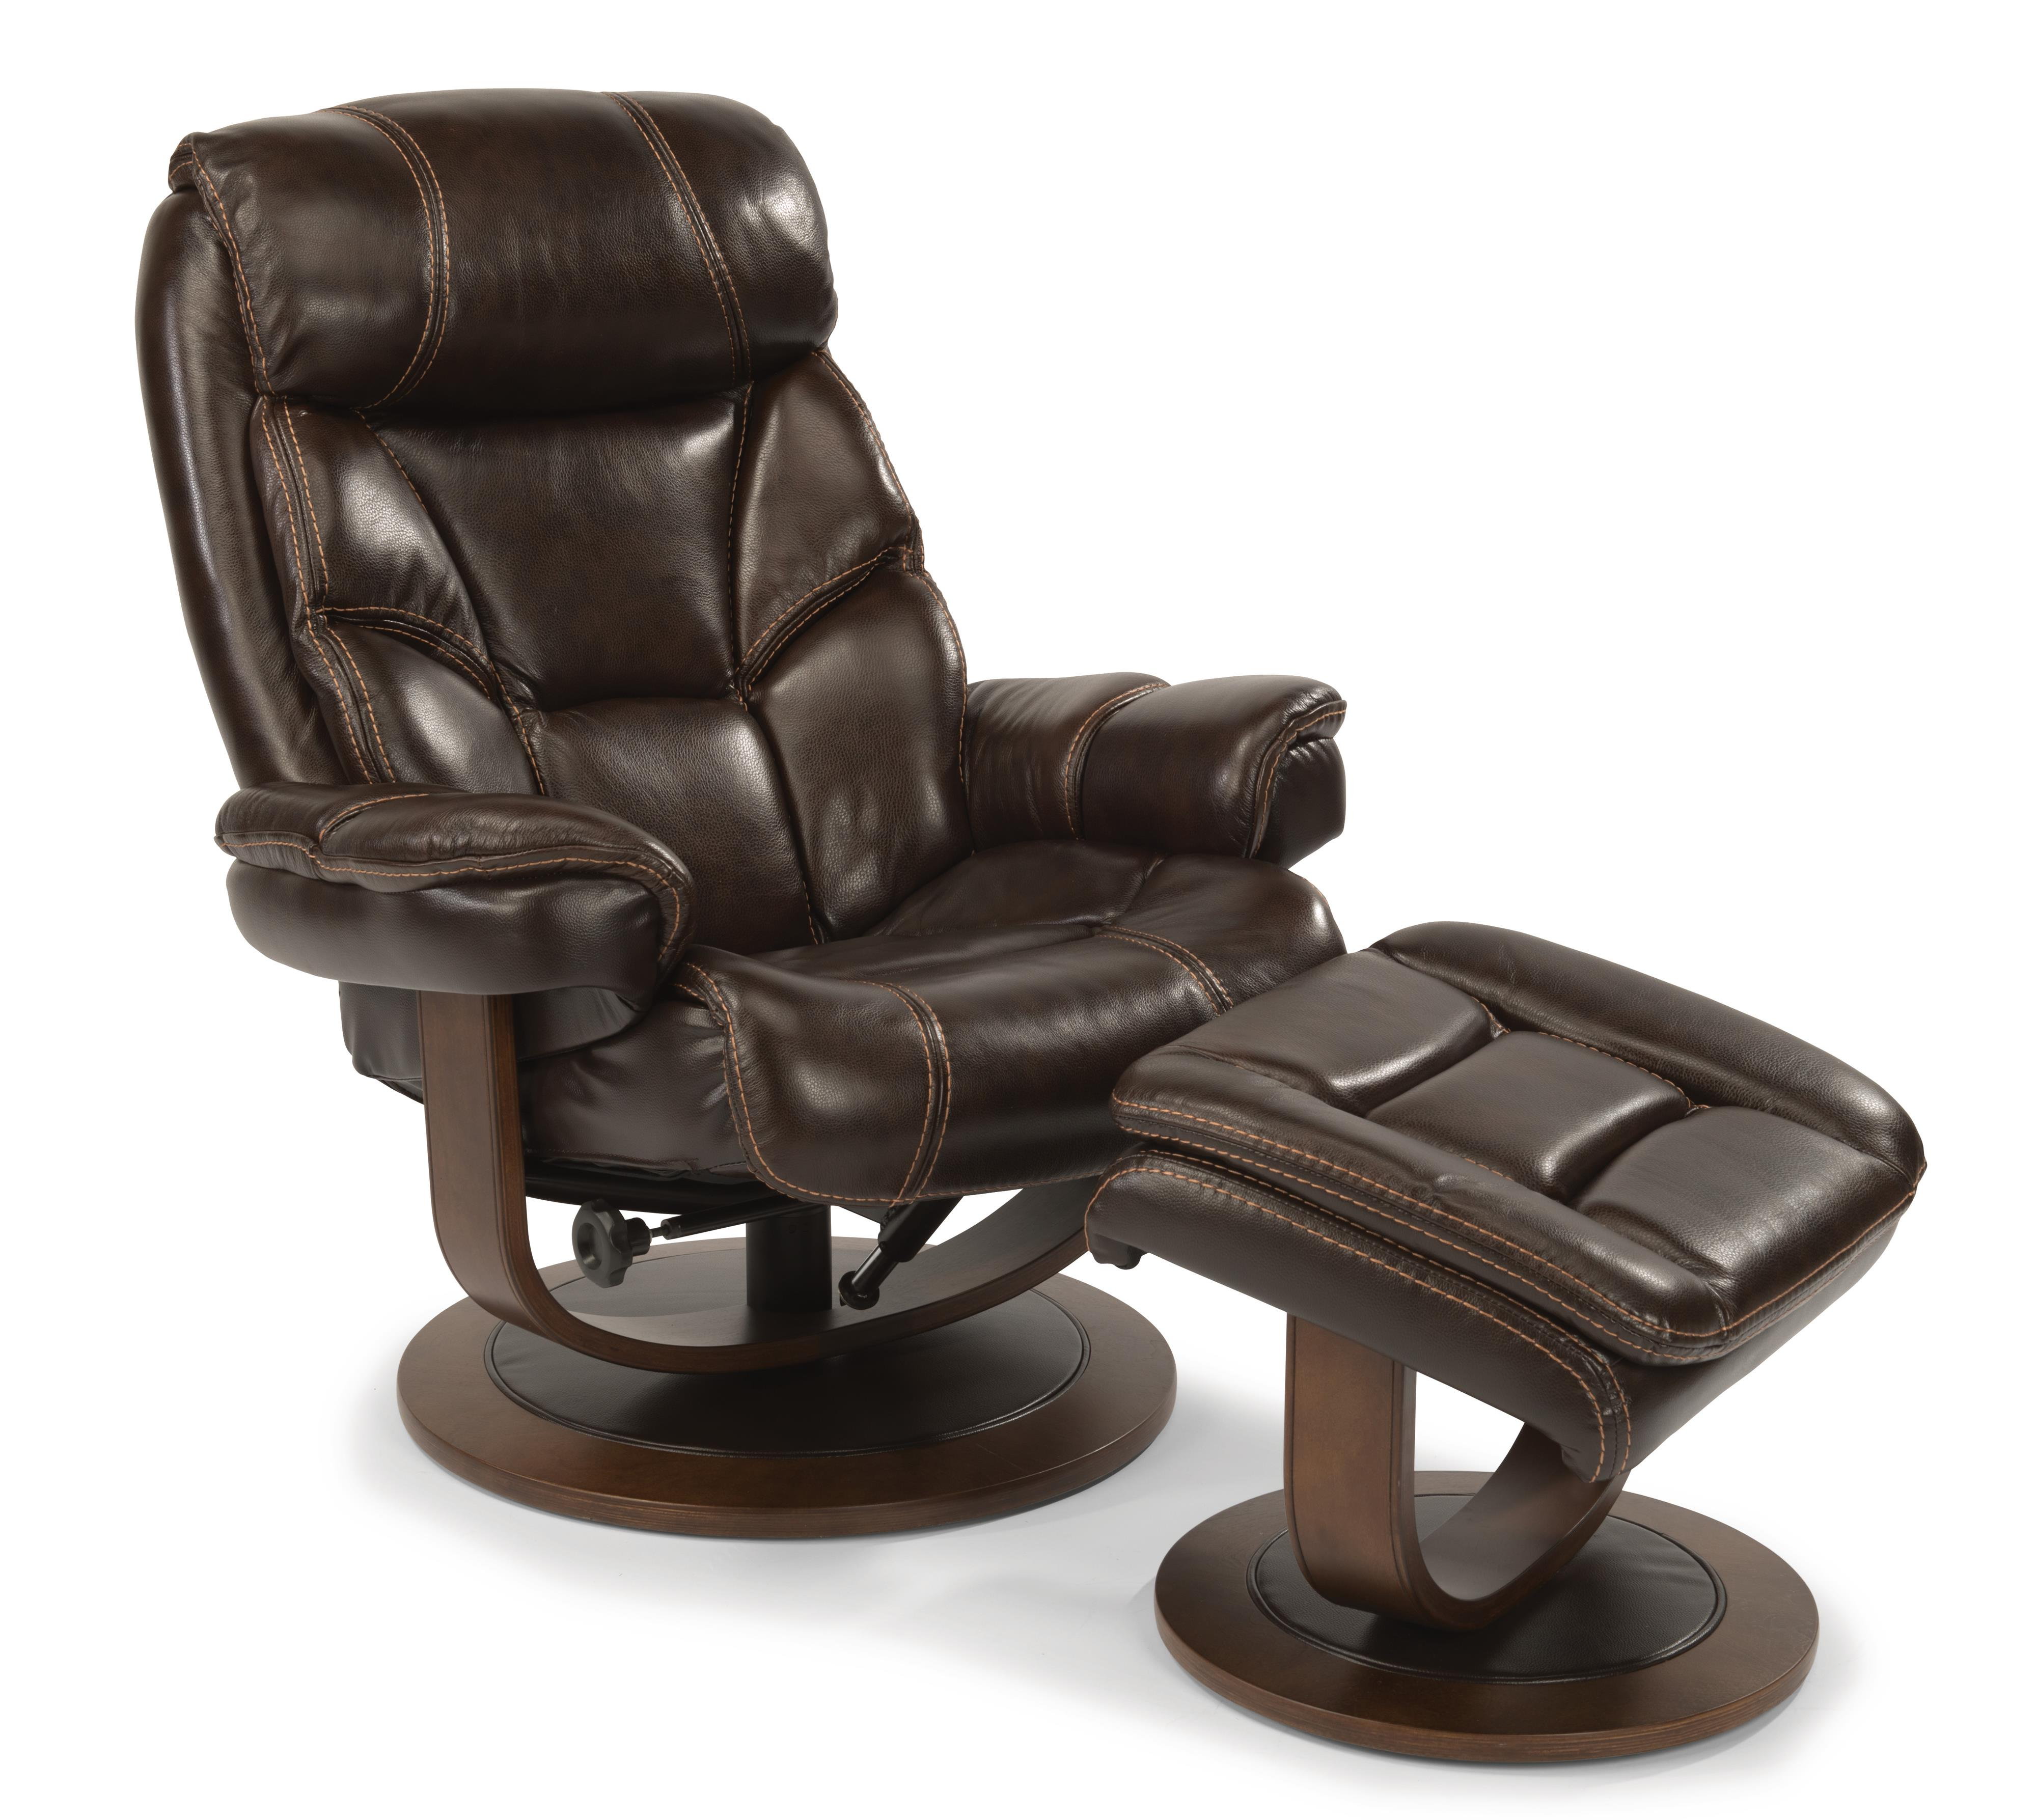 Flexsteel Latitudes-West Reclining Chair and Ottoman Set - Item Number: 1453-CO-585-70